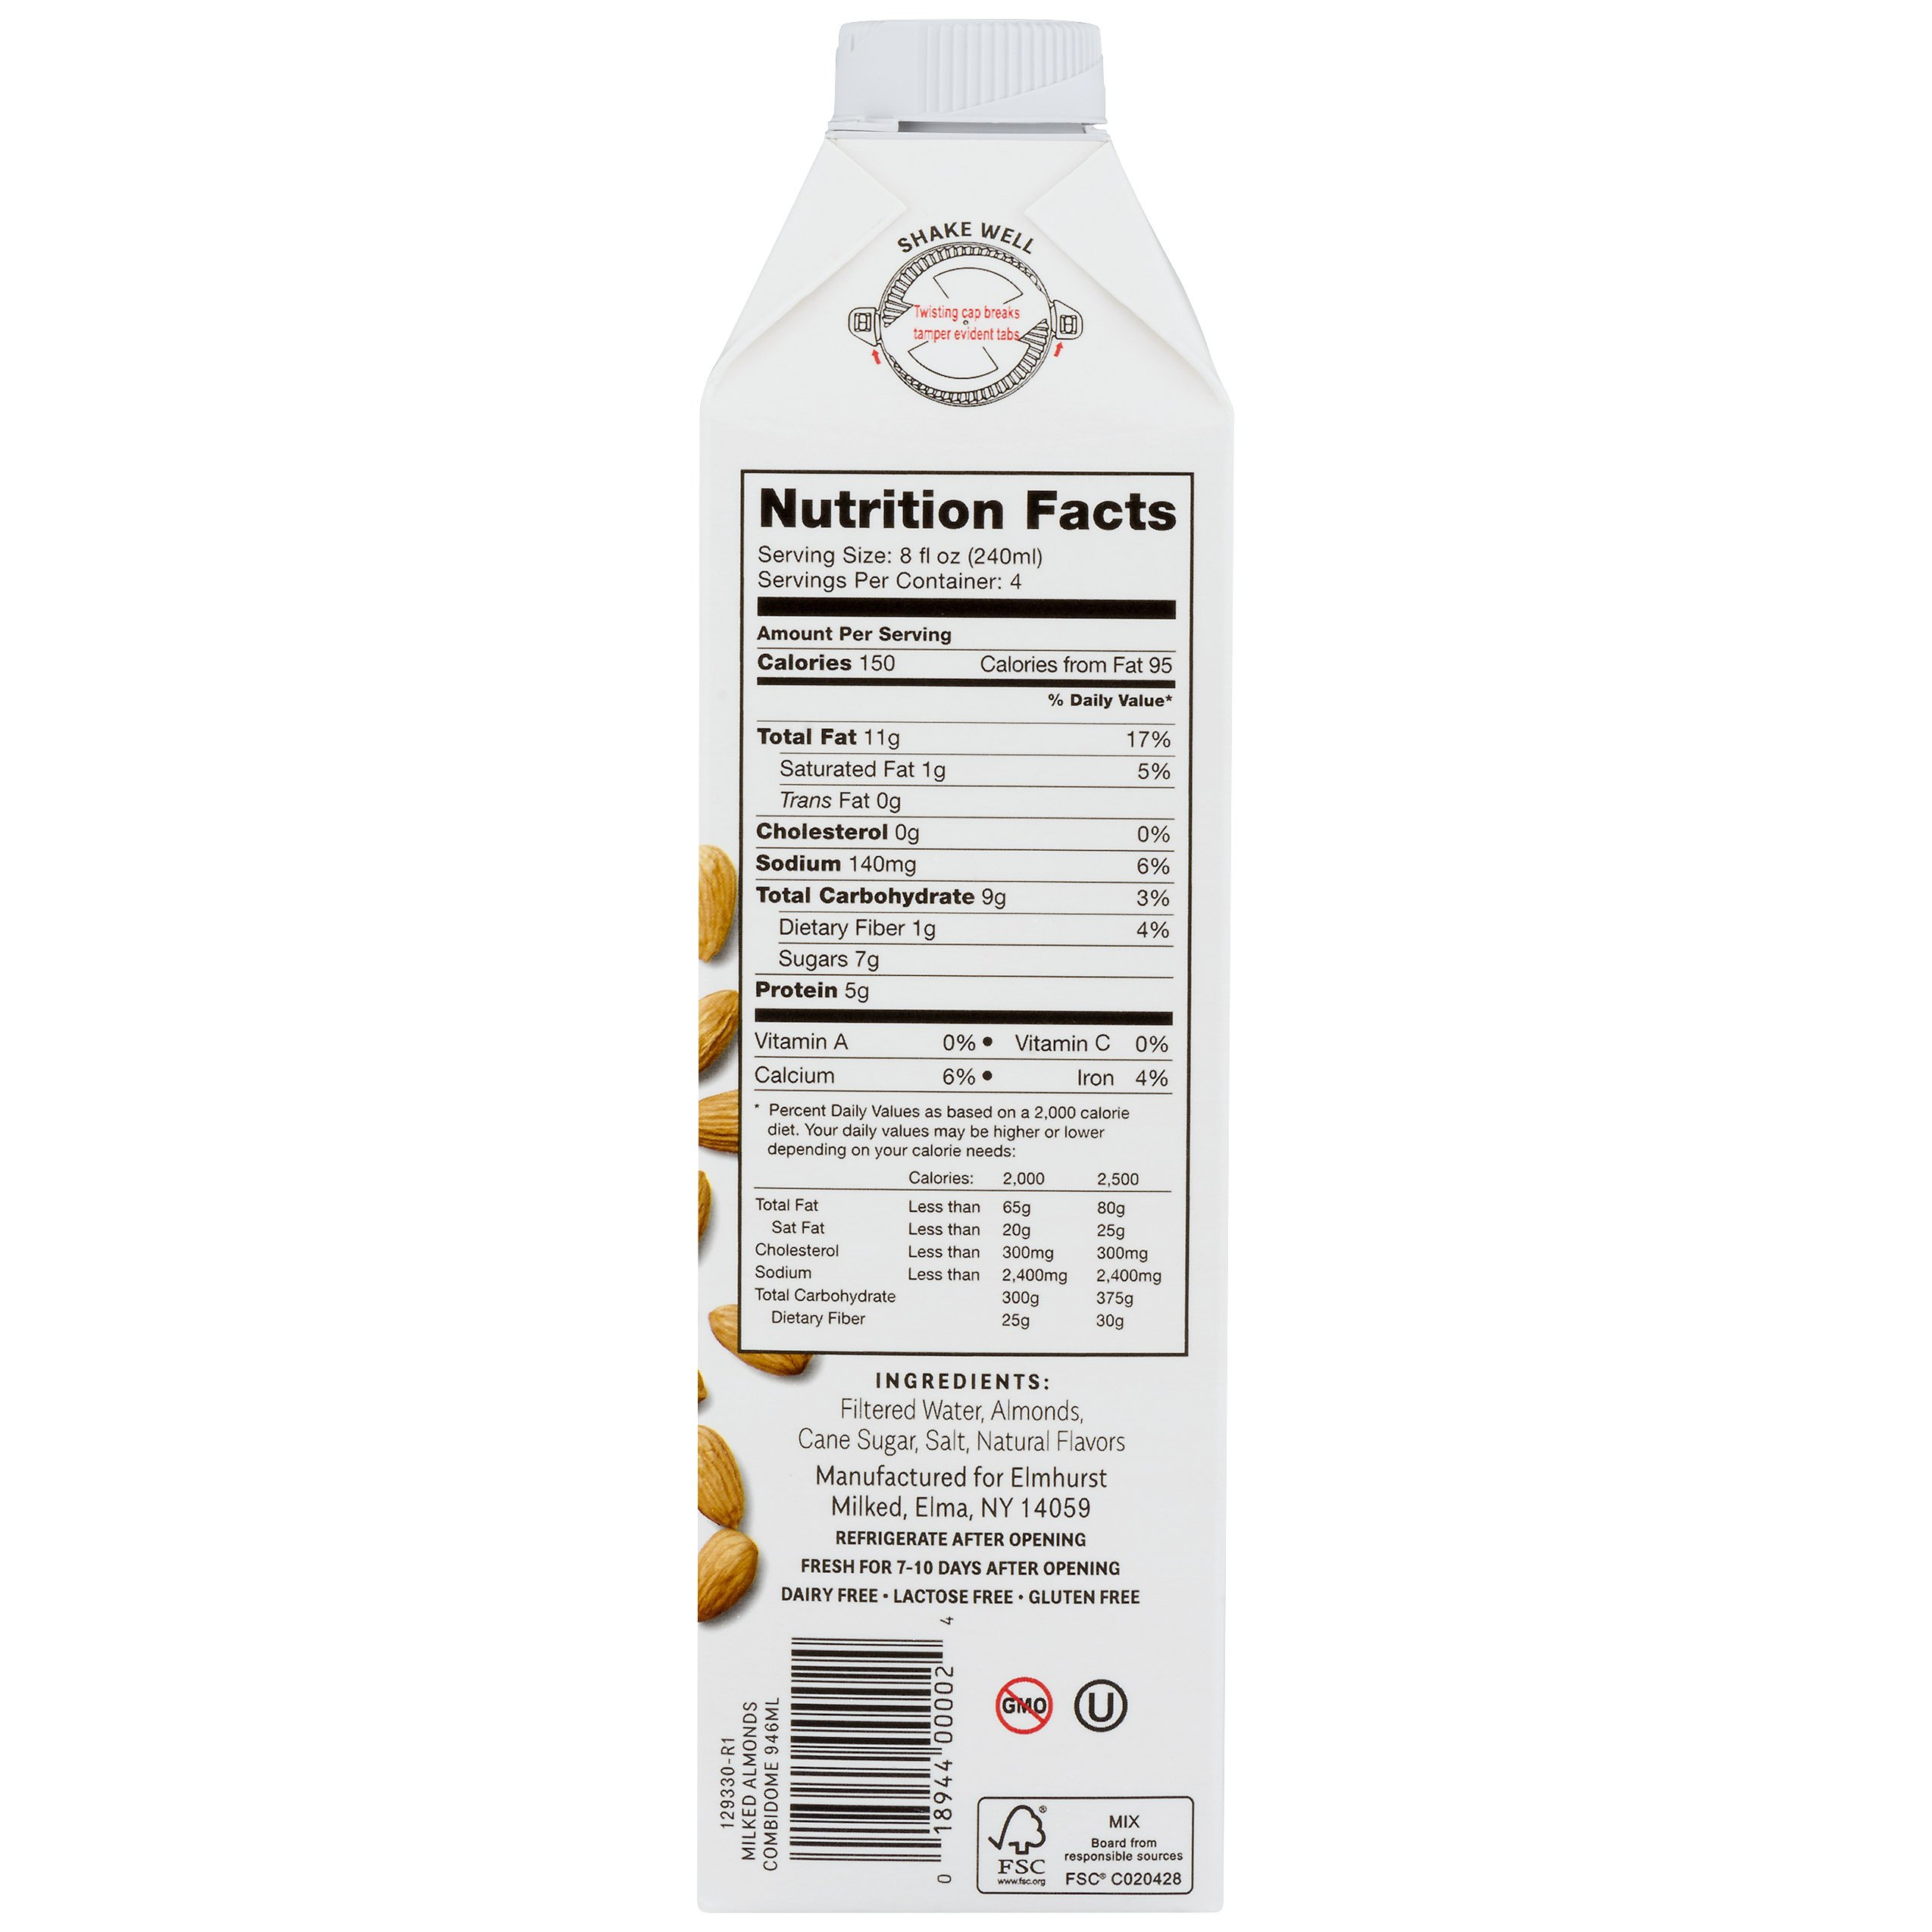 Elmhurst Milked - Almond Milk - 32 Fluid Ounces (Pack of 6) Only 5 Ingredients, 4X the Protein, Non Dairy, Keto Friendly, No Added Gums or Emulsifiers, Vegan by Elmhurst (Image #5)